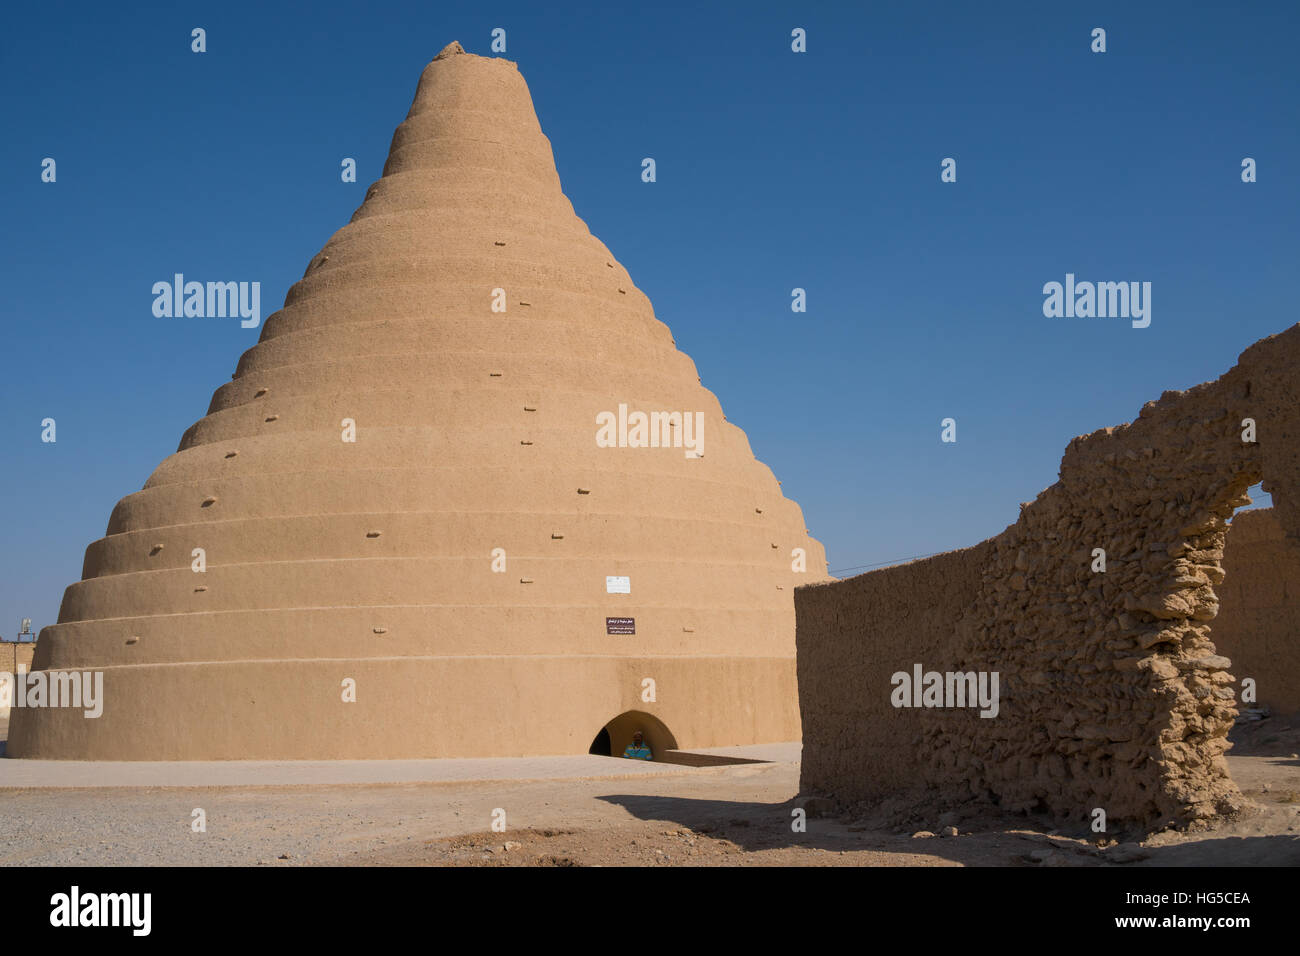 Ice house for preserving ice, Arbukuh, near Yazd, Iran, Middle East - Stock Image